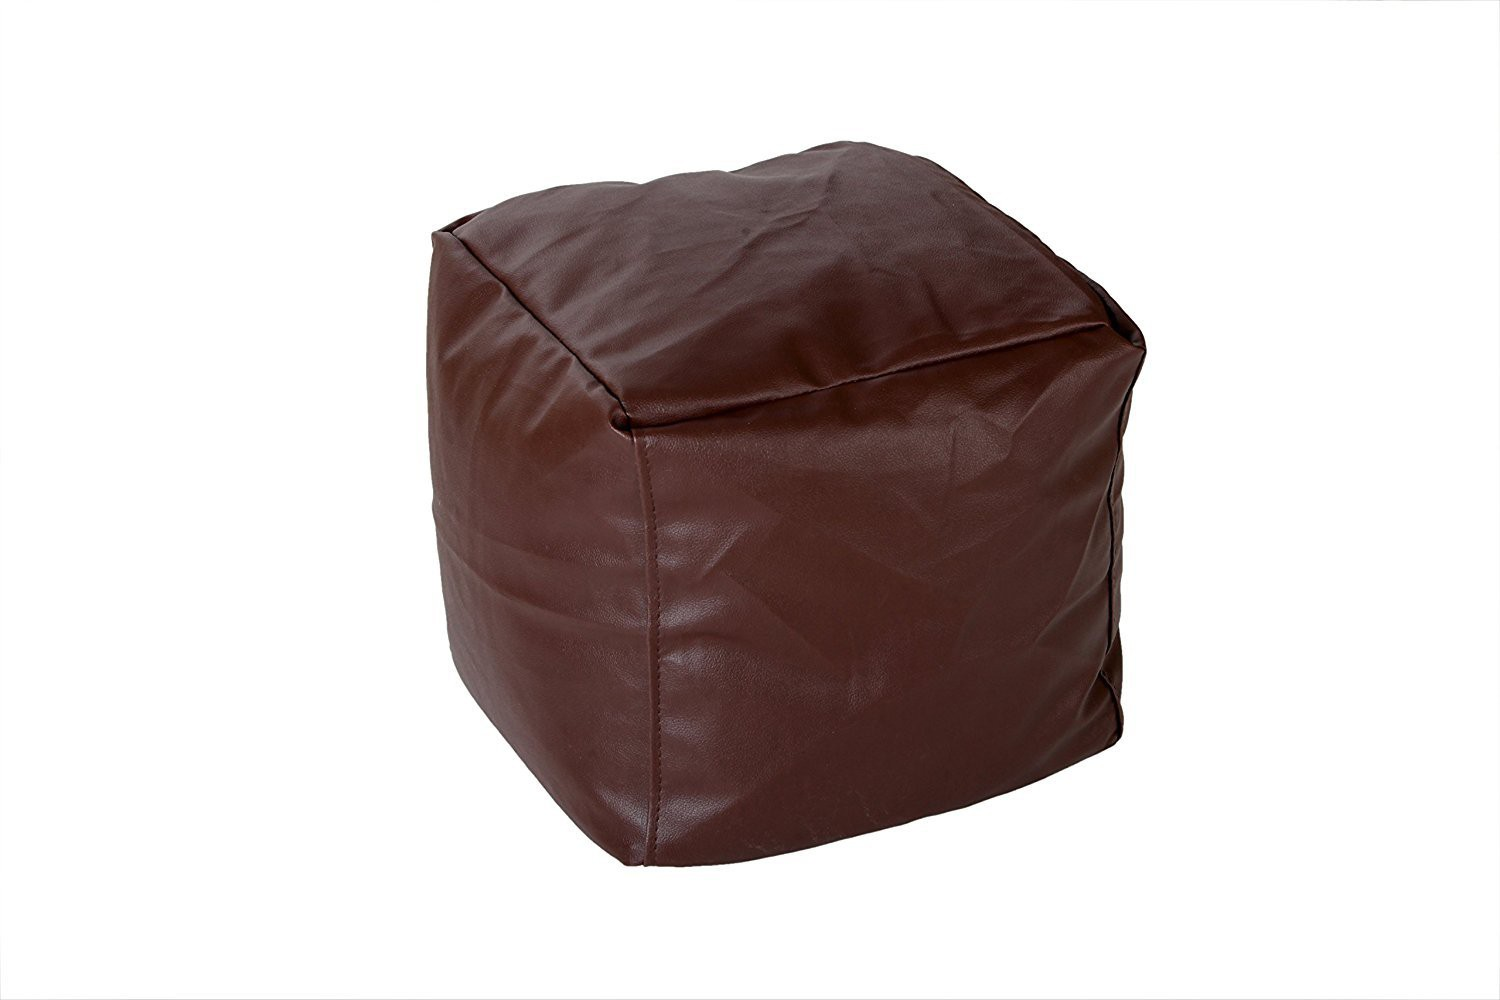 View Furniture Land Medium Bean Bag Cover(Brown) Furniture (Furniture Land)